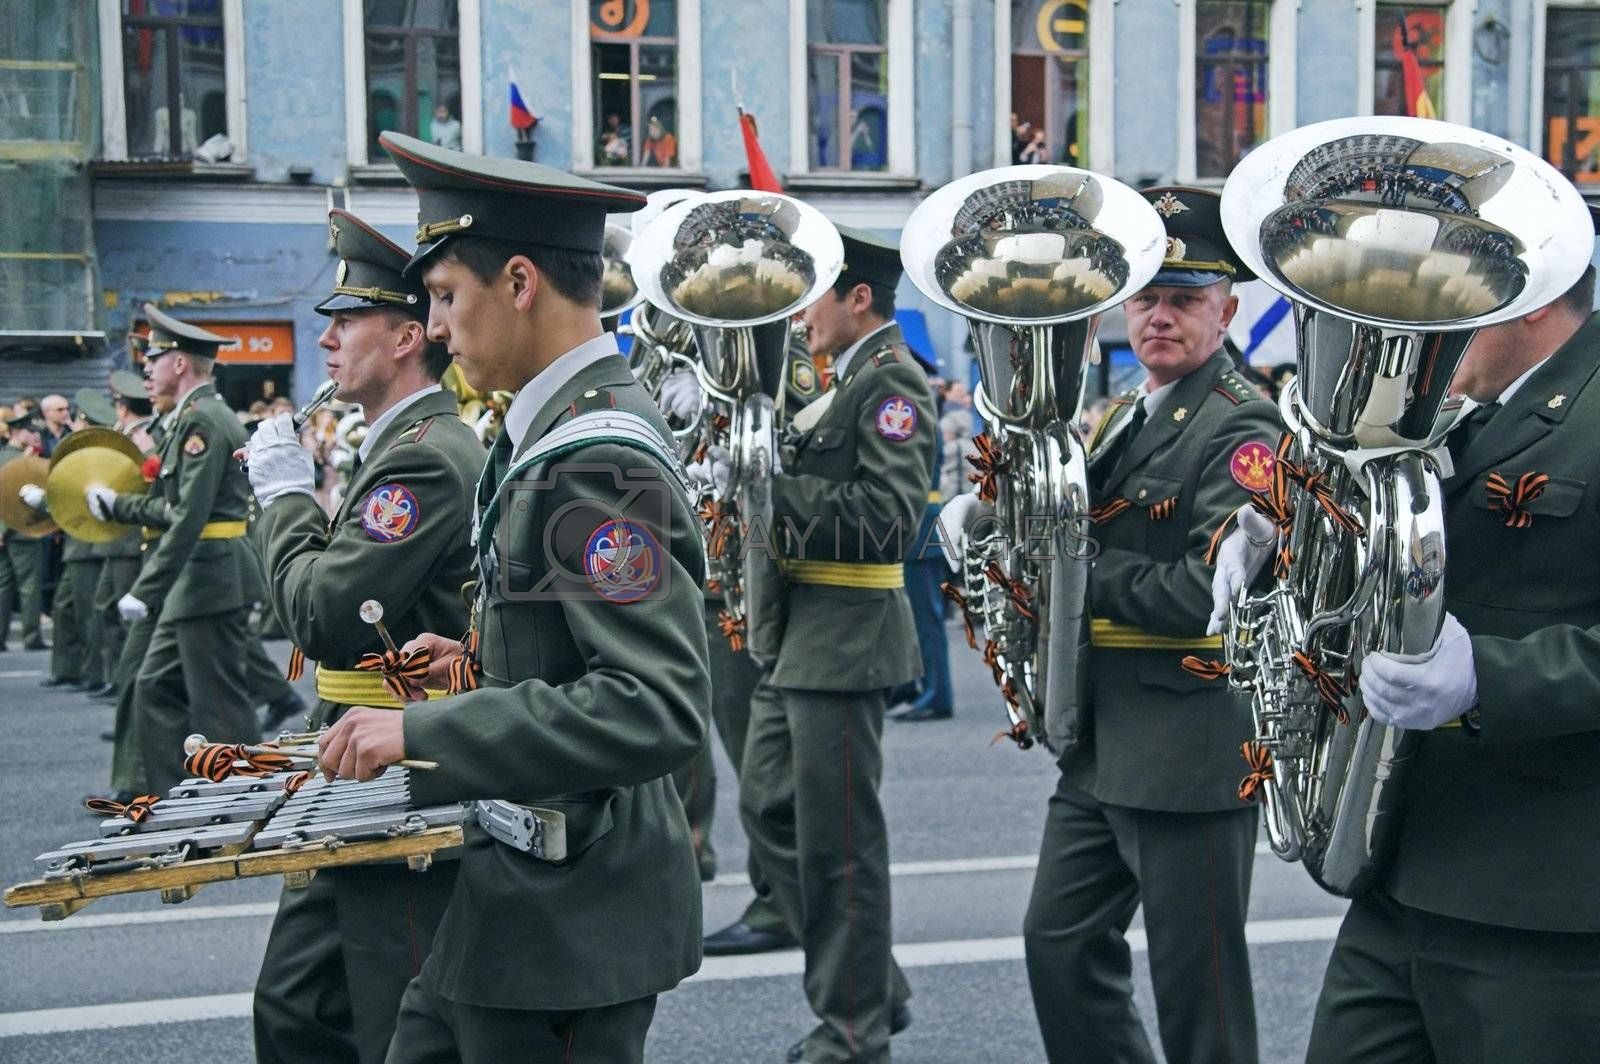 ST PETERSBURG - MAY 9: Military orchestra musicians parading to celebrate World War II Victory Day May 9, 2008, St Petersburg, Russia.